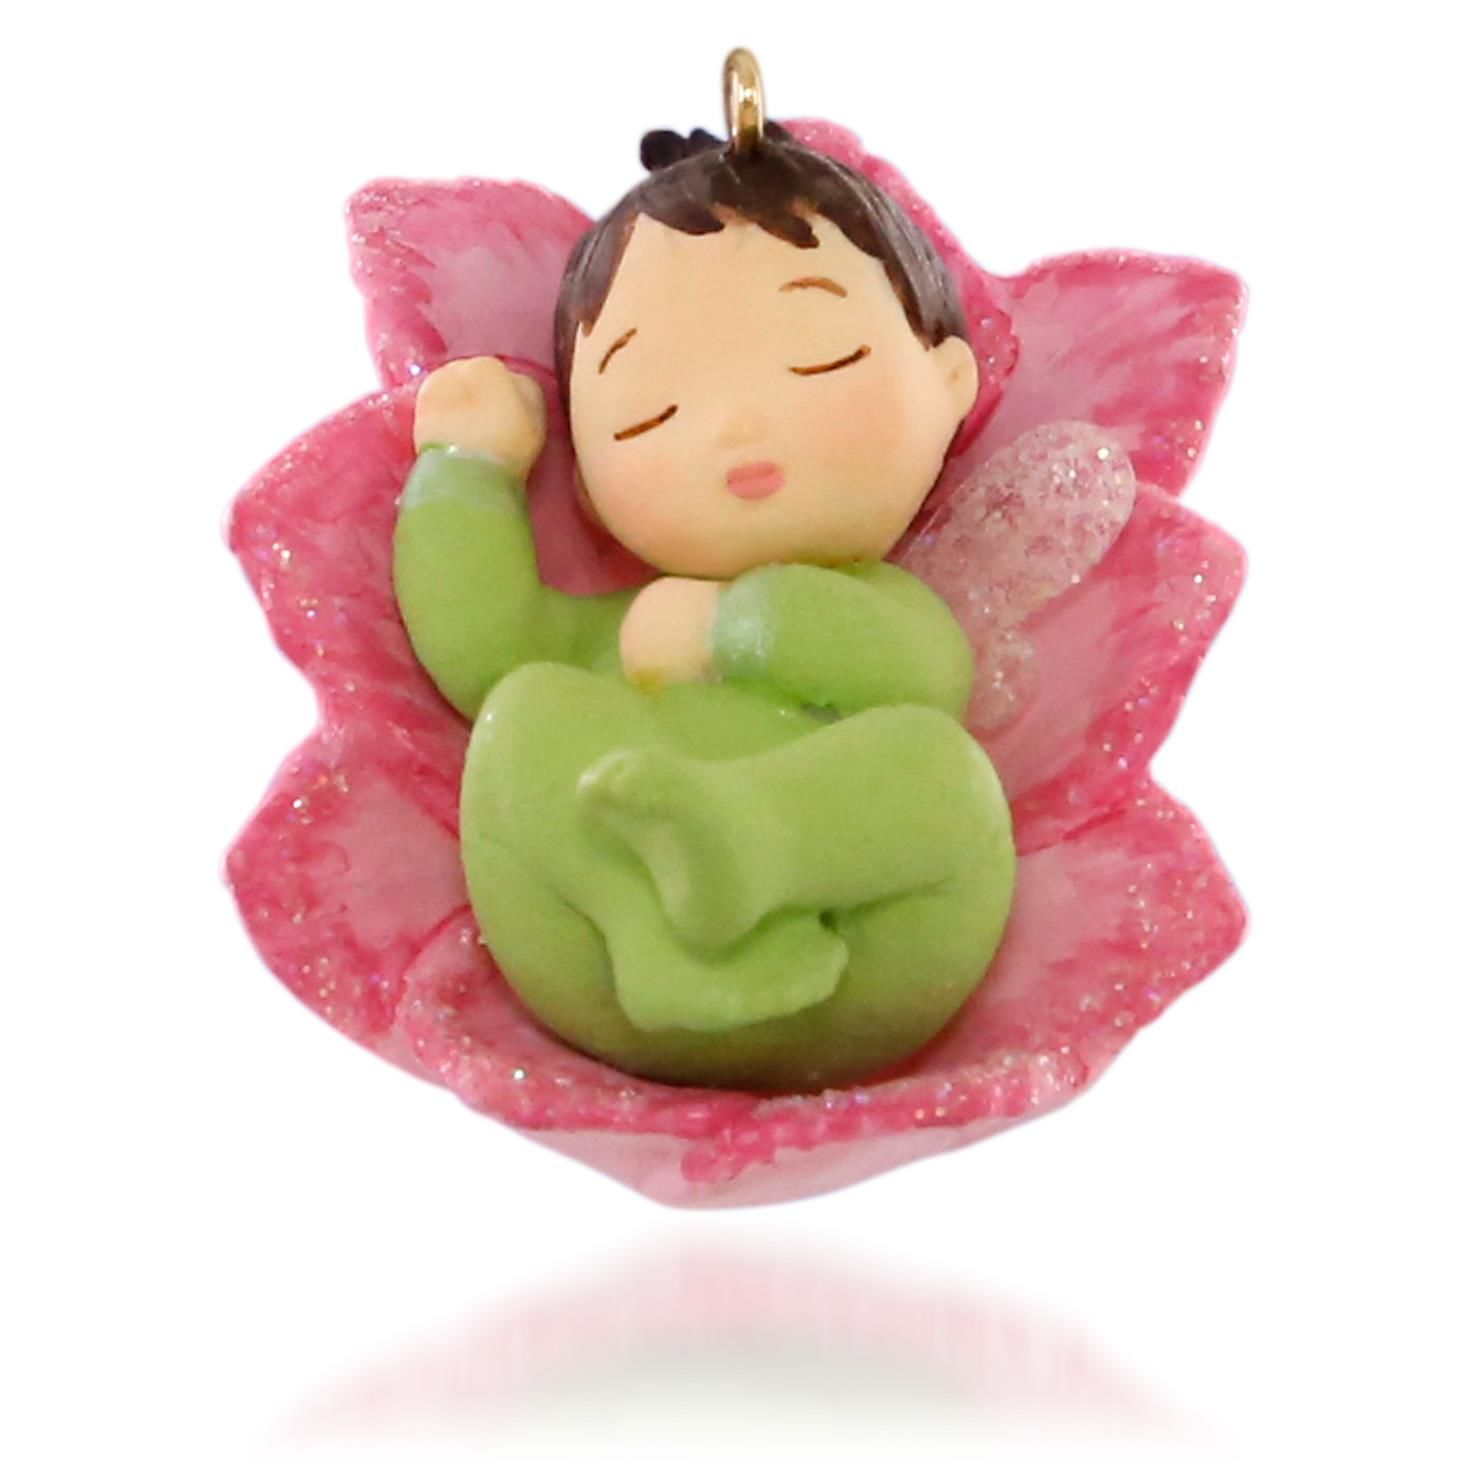 HALLMARK 2015 Lotus and Poinsettia #1 in the Baby Fairy Messengers Series NEW